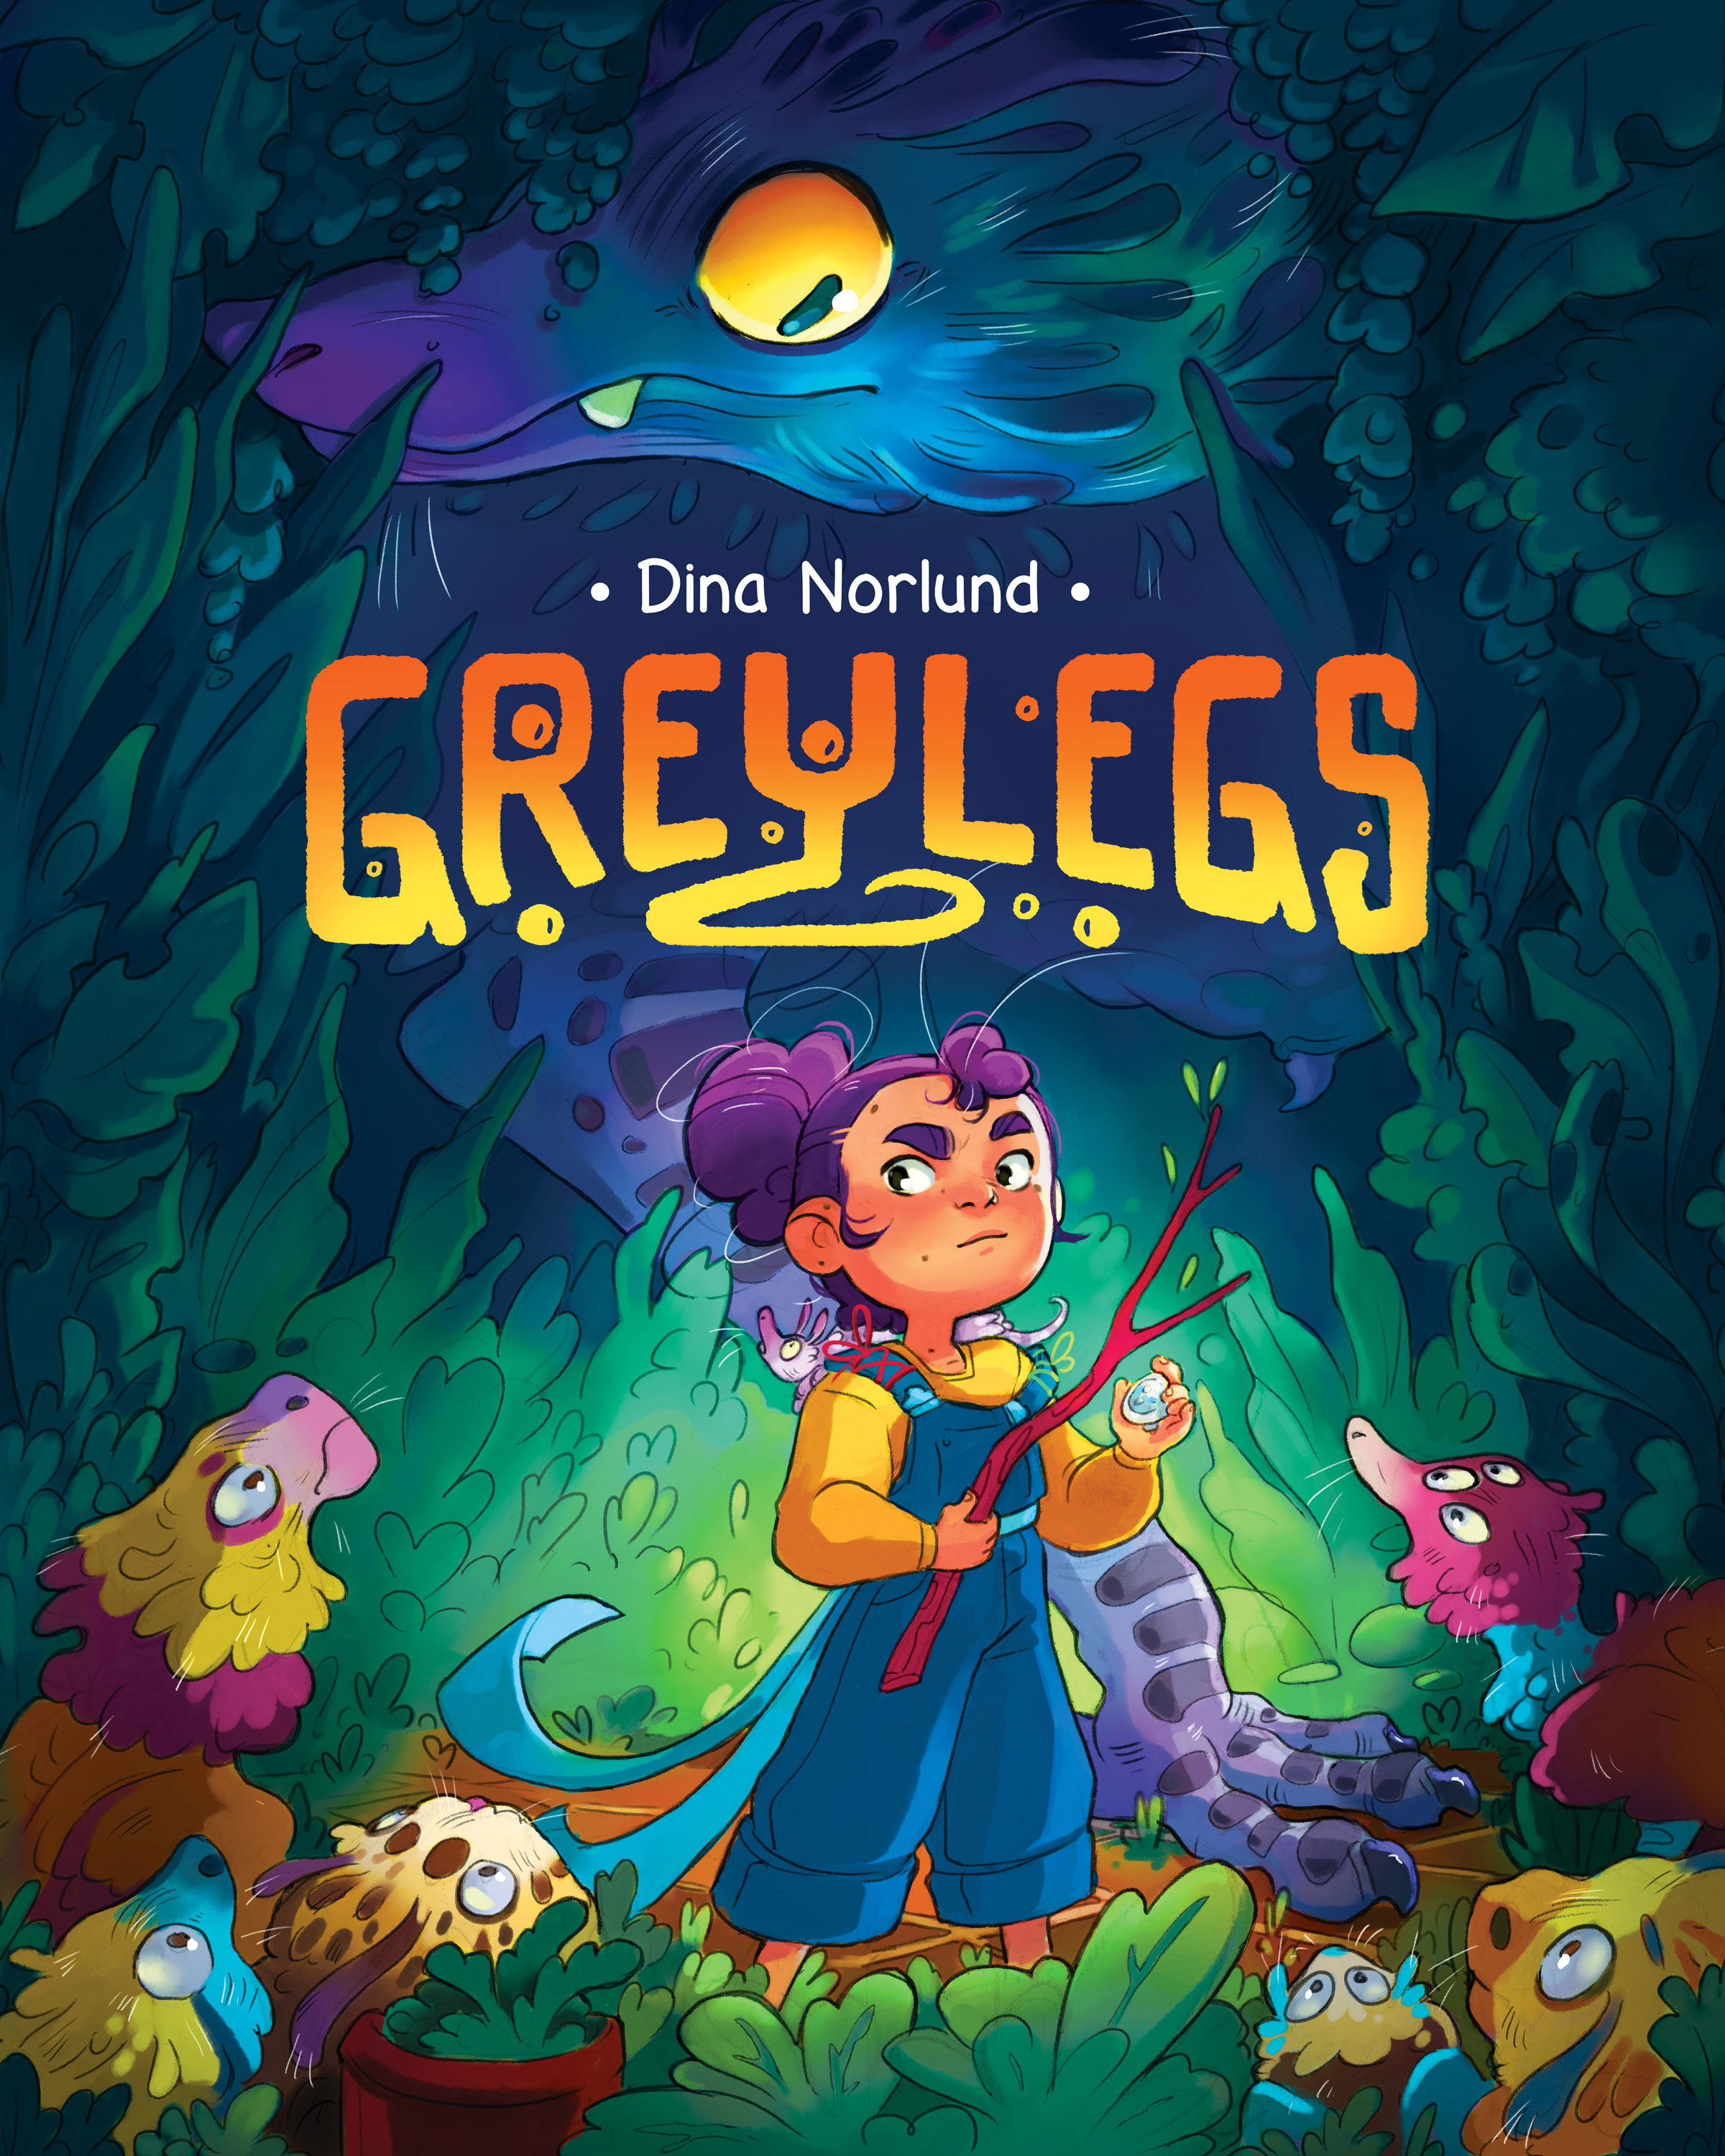 Greylegs - Eva lives in a magical garden filled with strange flowers, curious trees and the weirdest birds you will ever meet. She could not imagine a more perfect place to call home. But one day she glimpses something blue, green and grey lurking in the shadows. What is it, and more importantly... what does it want?